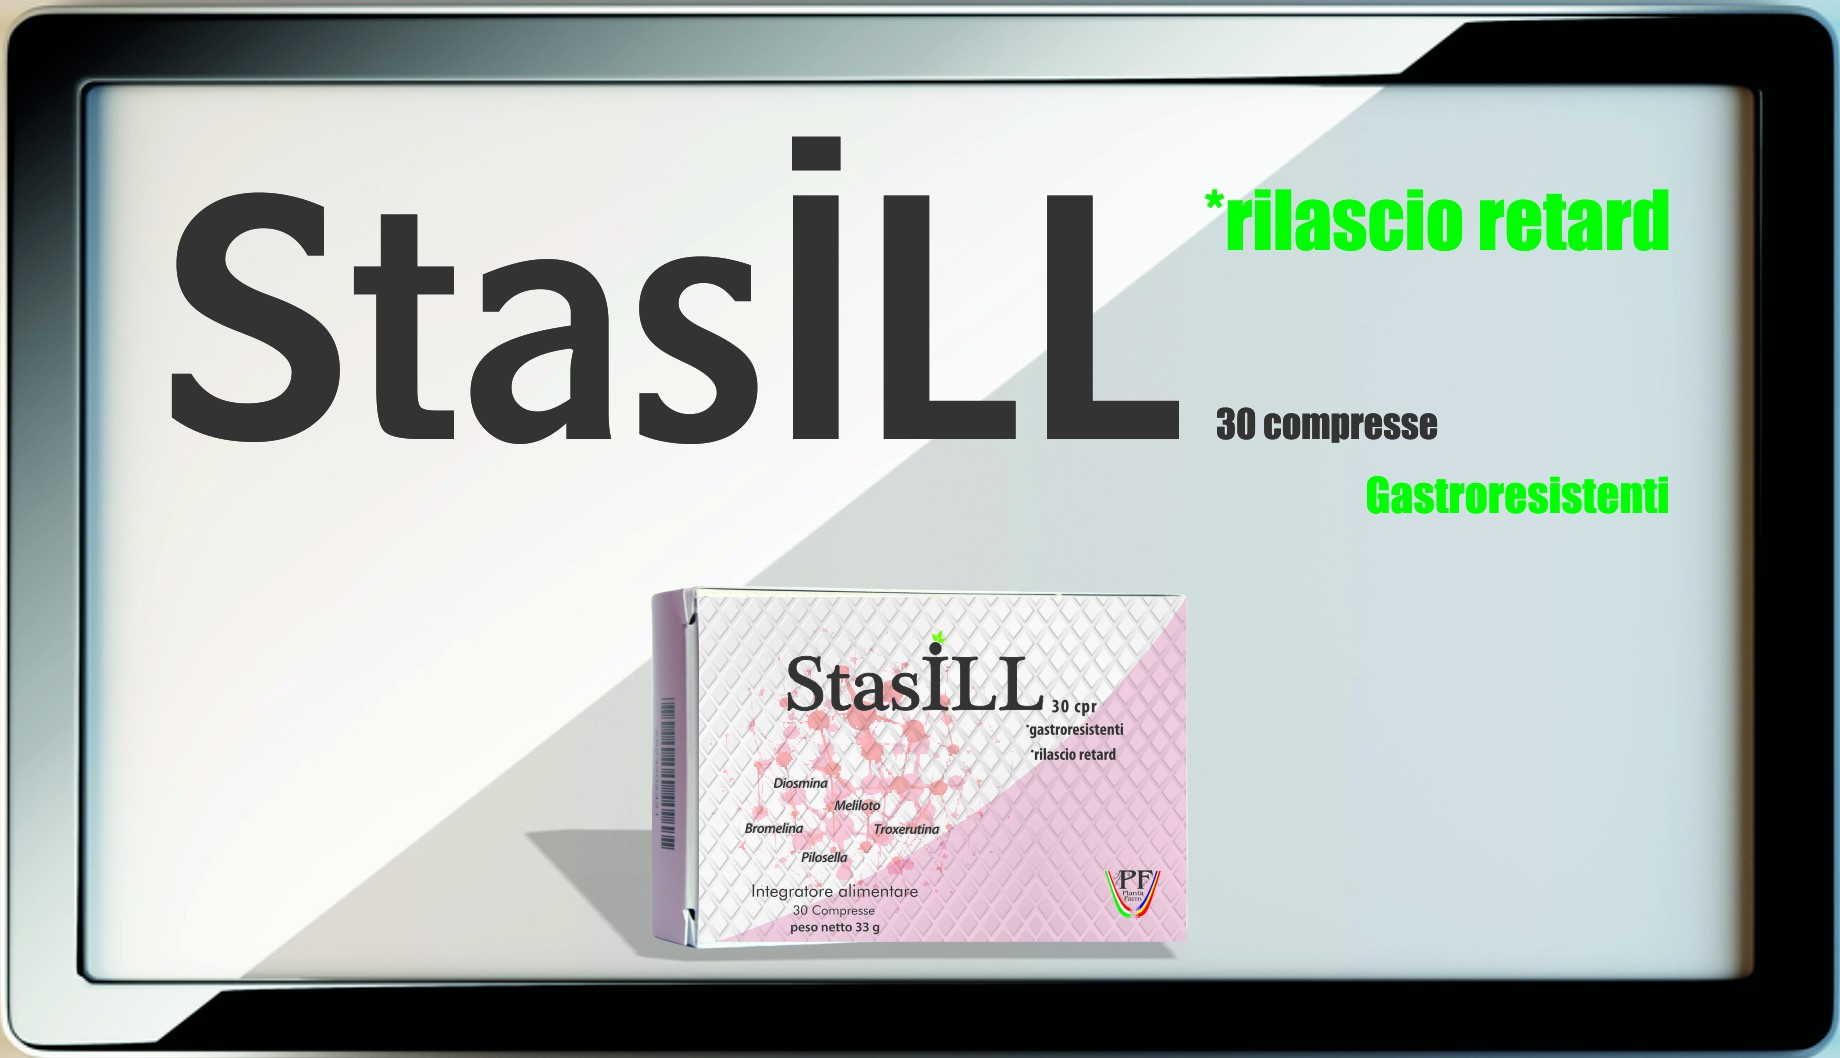 Stasill Comprese